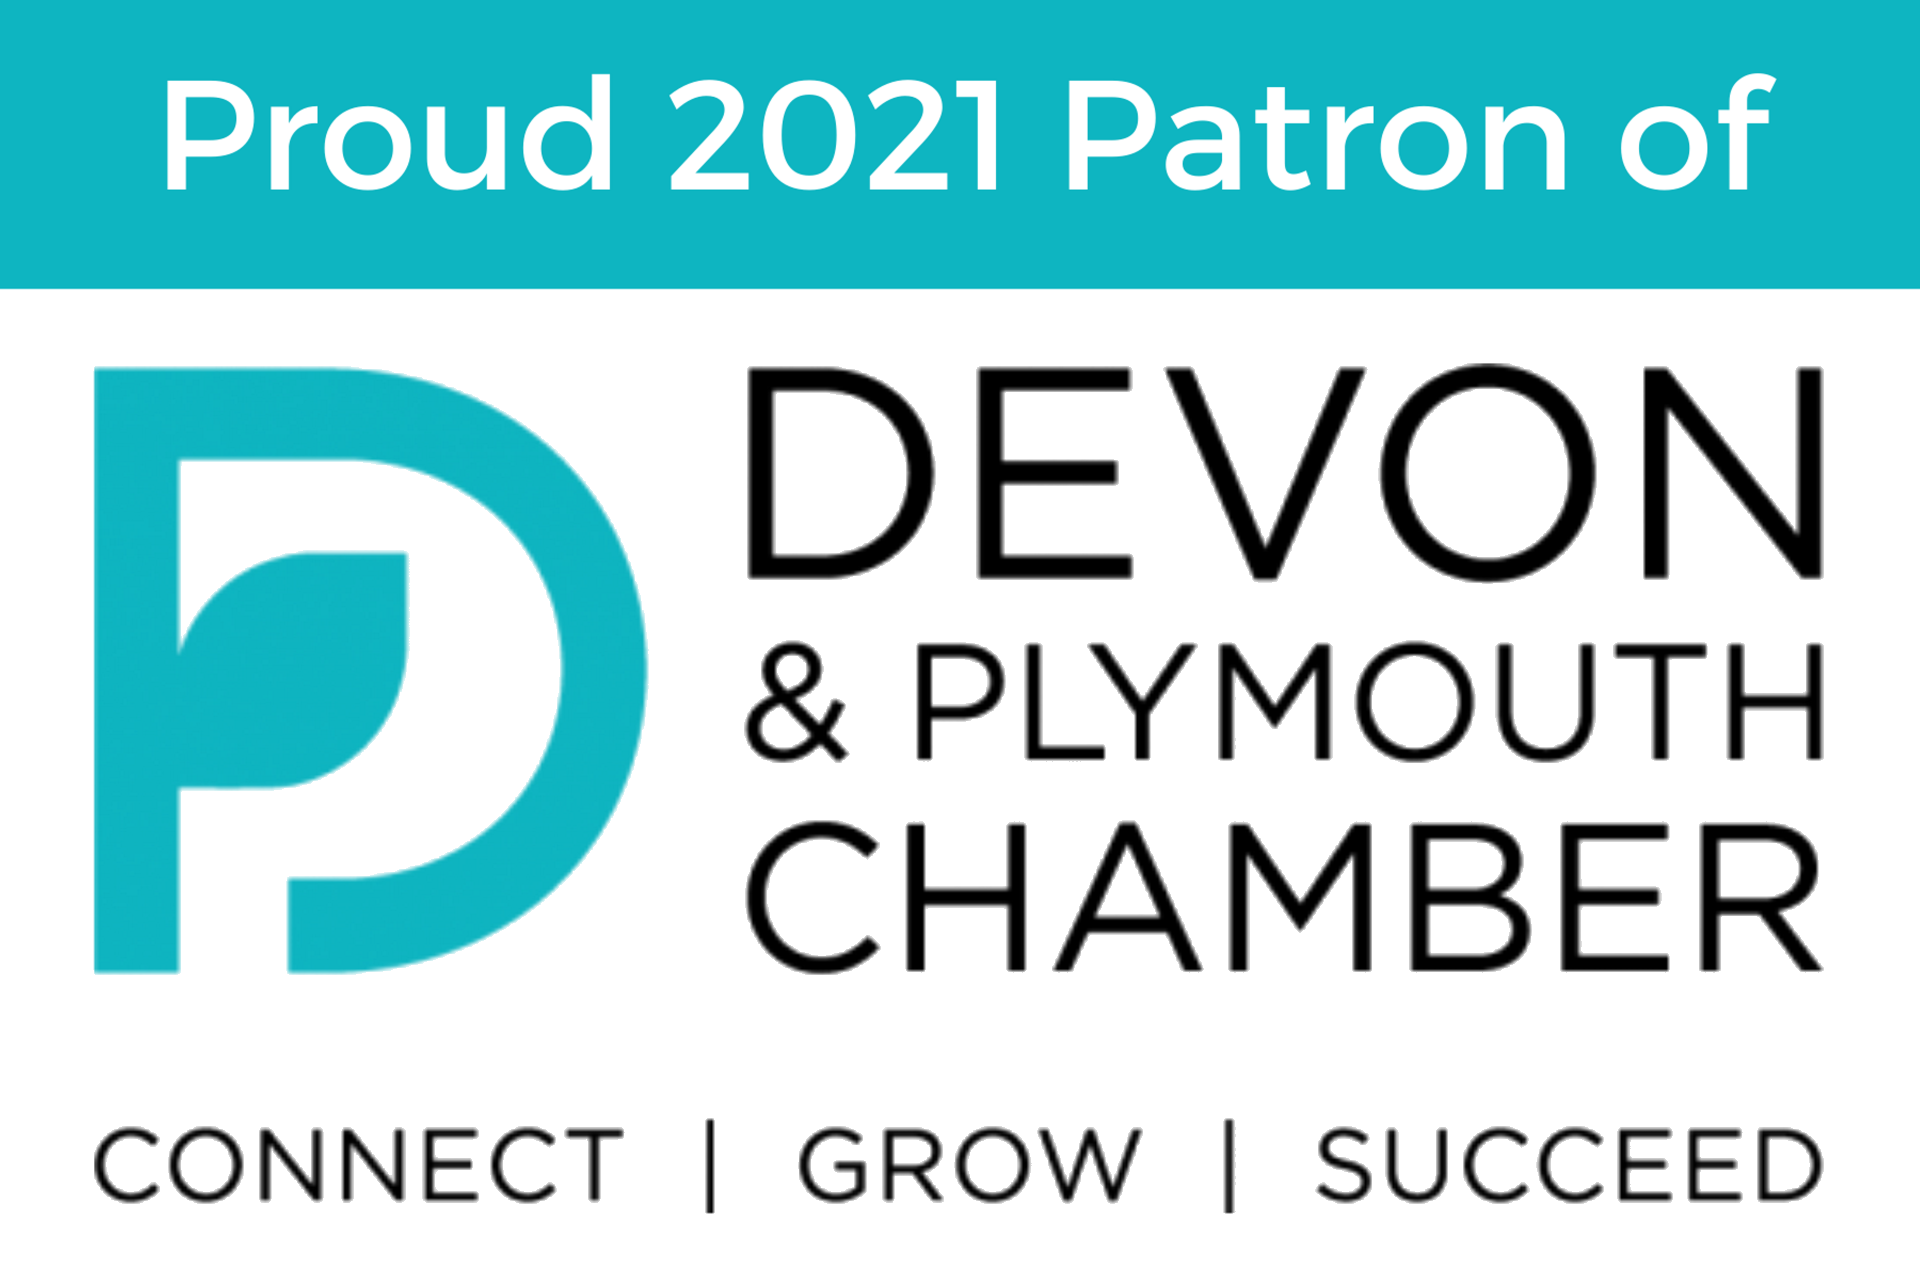 Devon & Plymouth Chamber